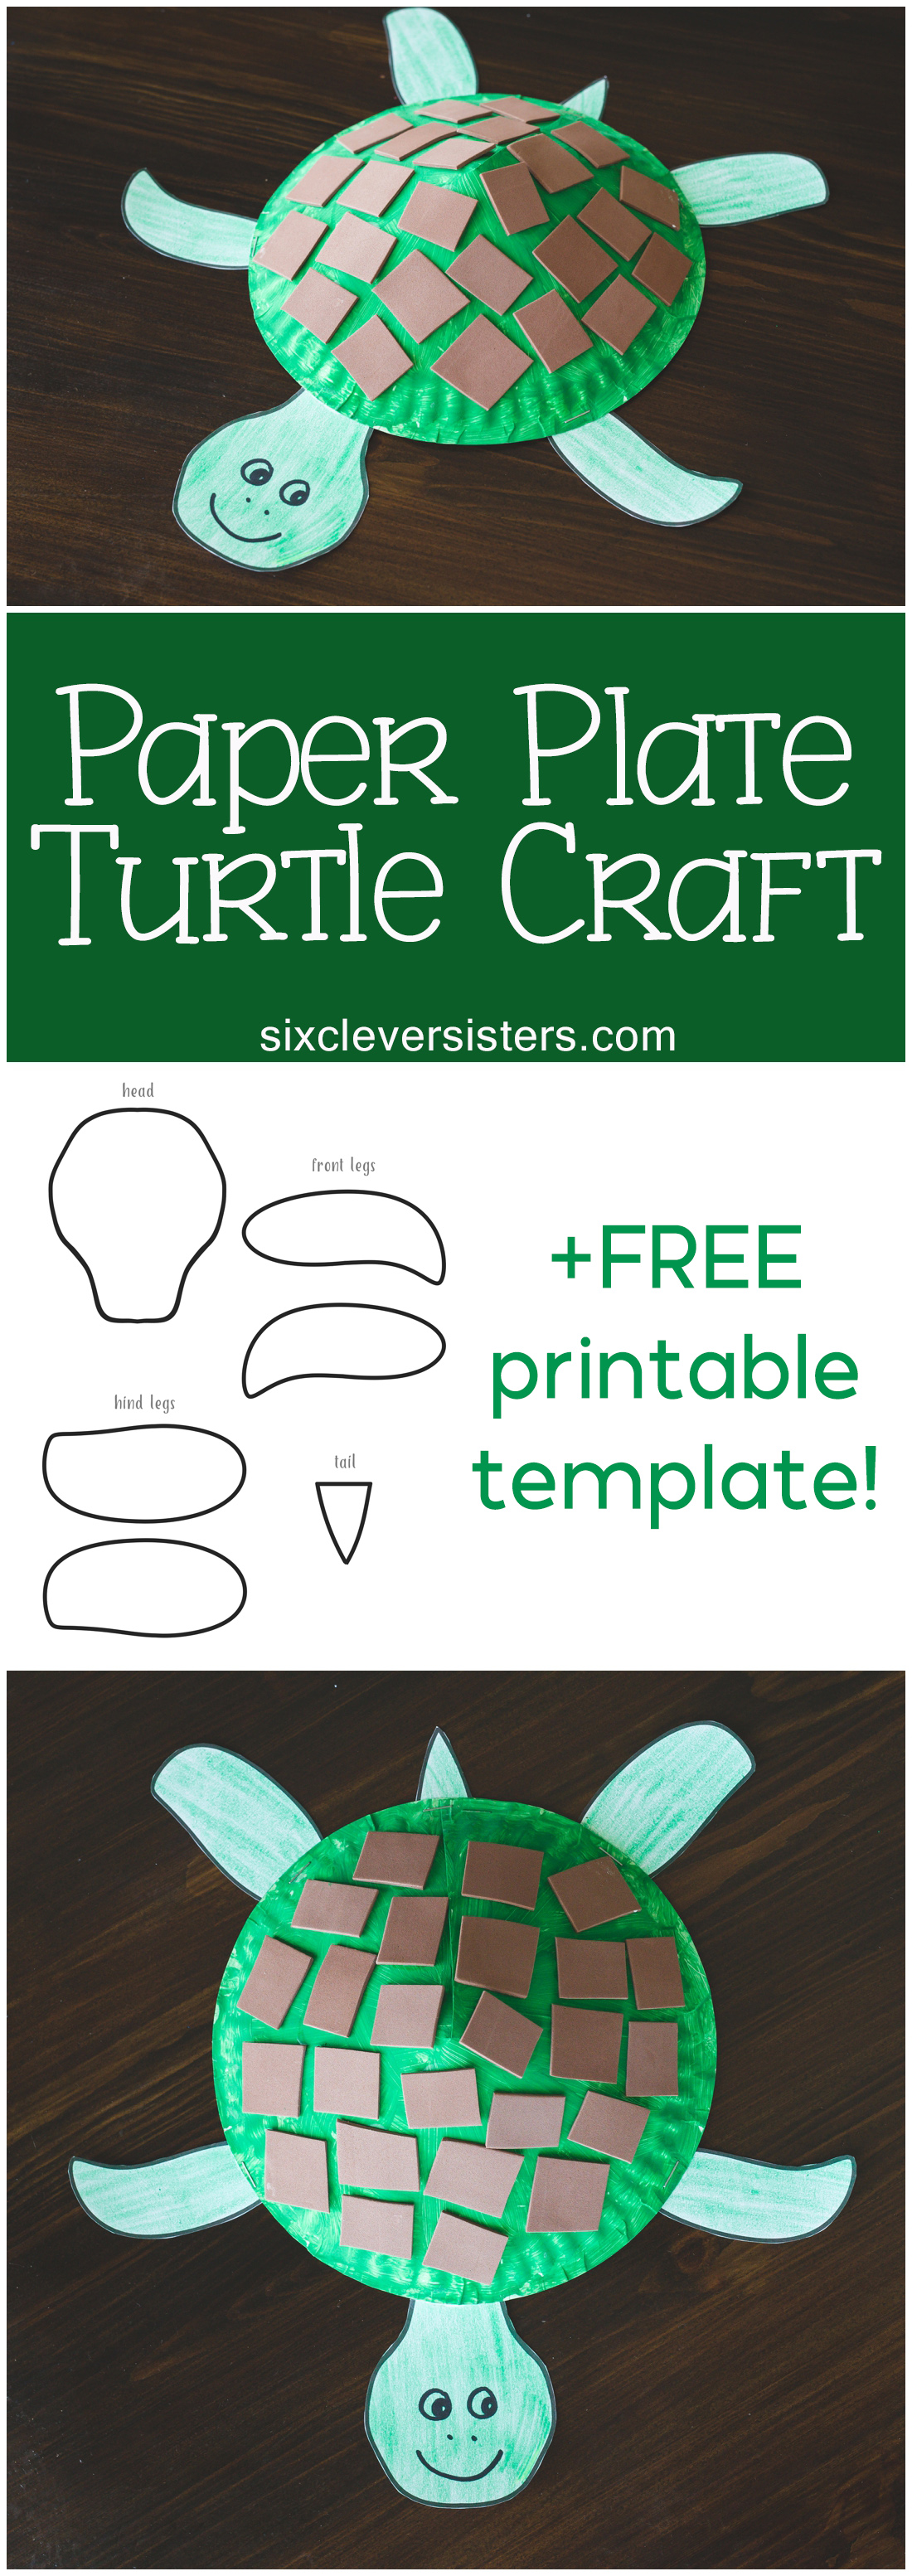 image about Printable Crafts for Kids referred to as Moms Working day Crafts for Young children (+ Totally free Printable Templates